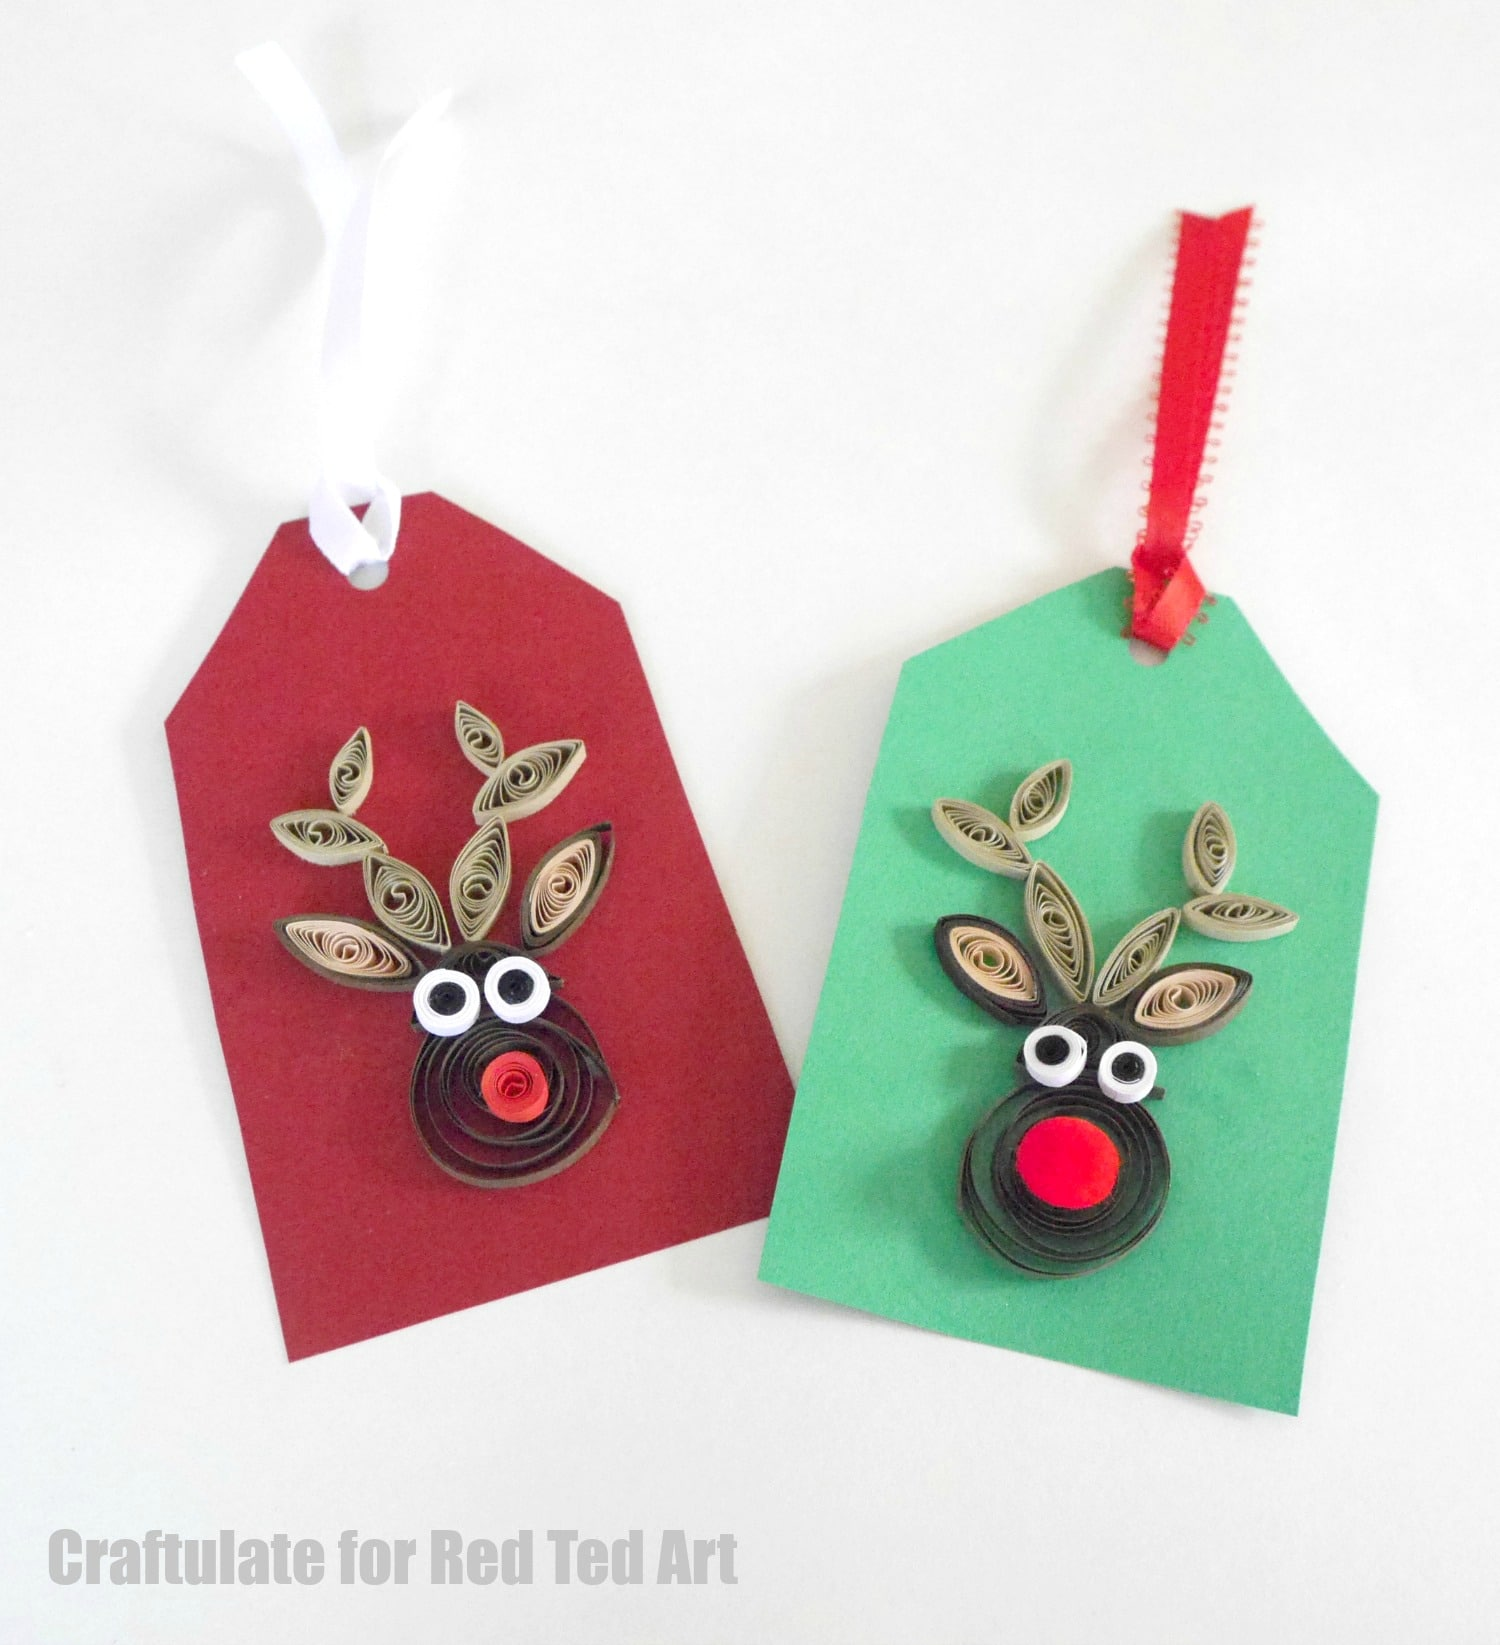 Pin The Reindeer Nose Red Ted Arts Blog